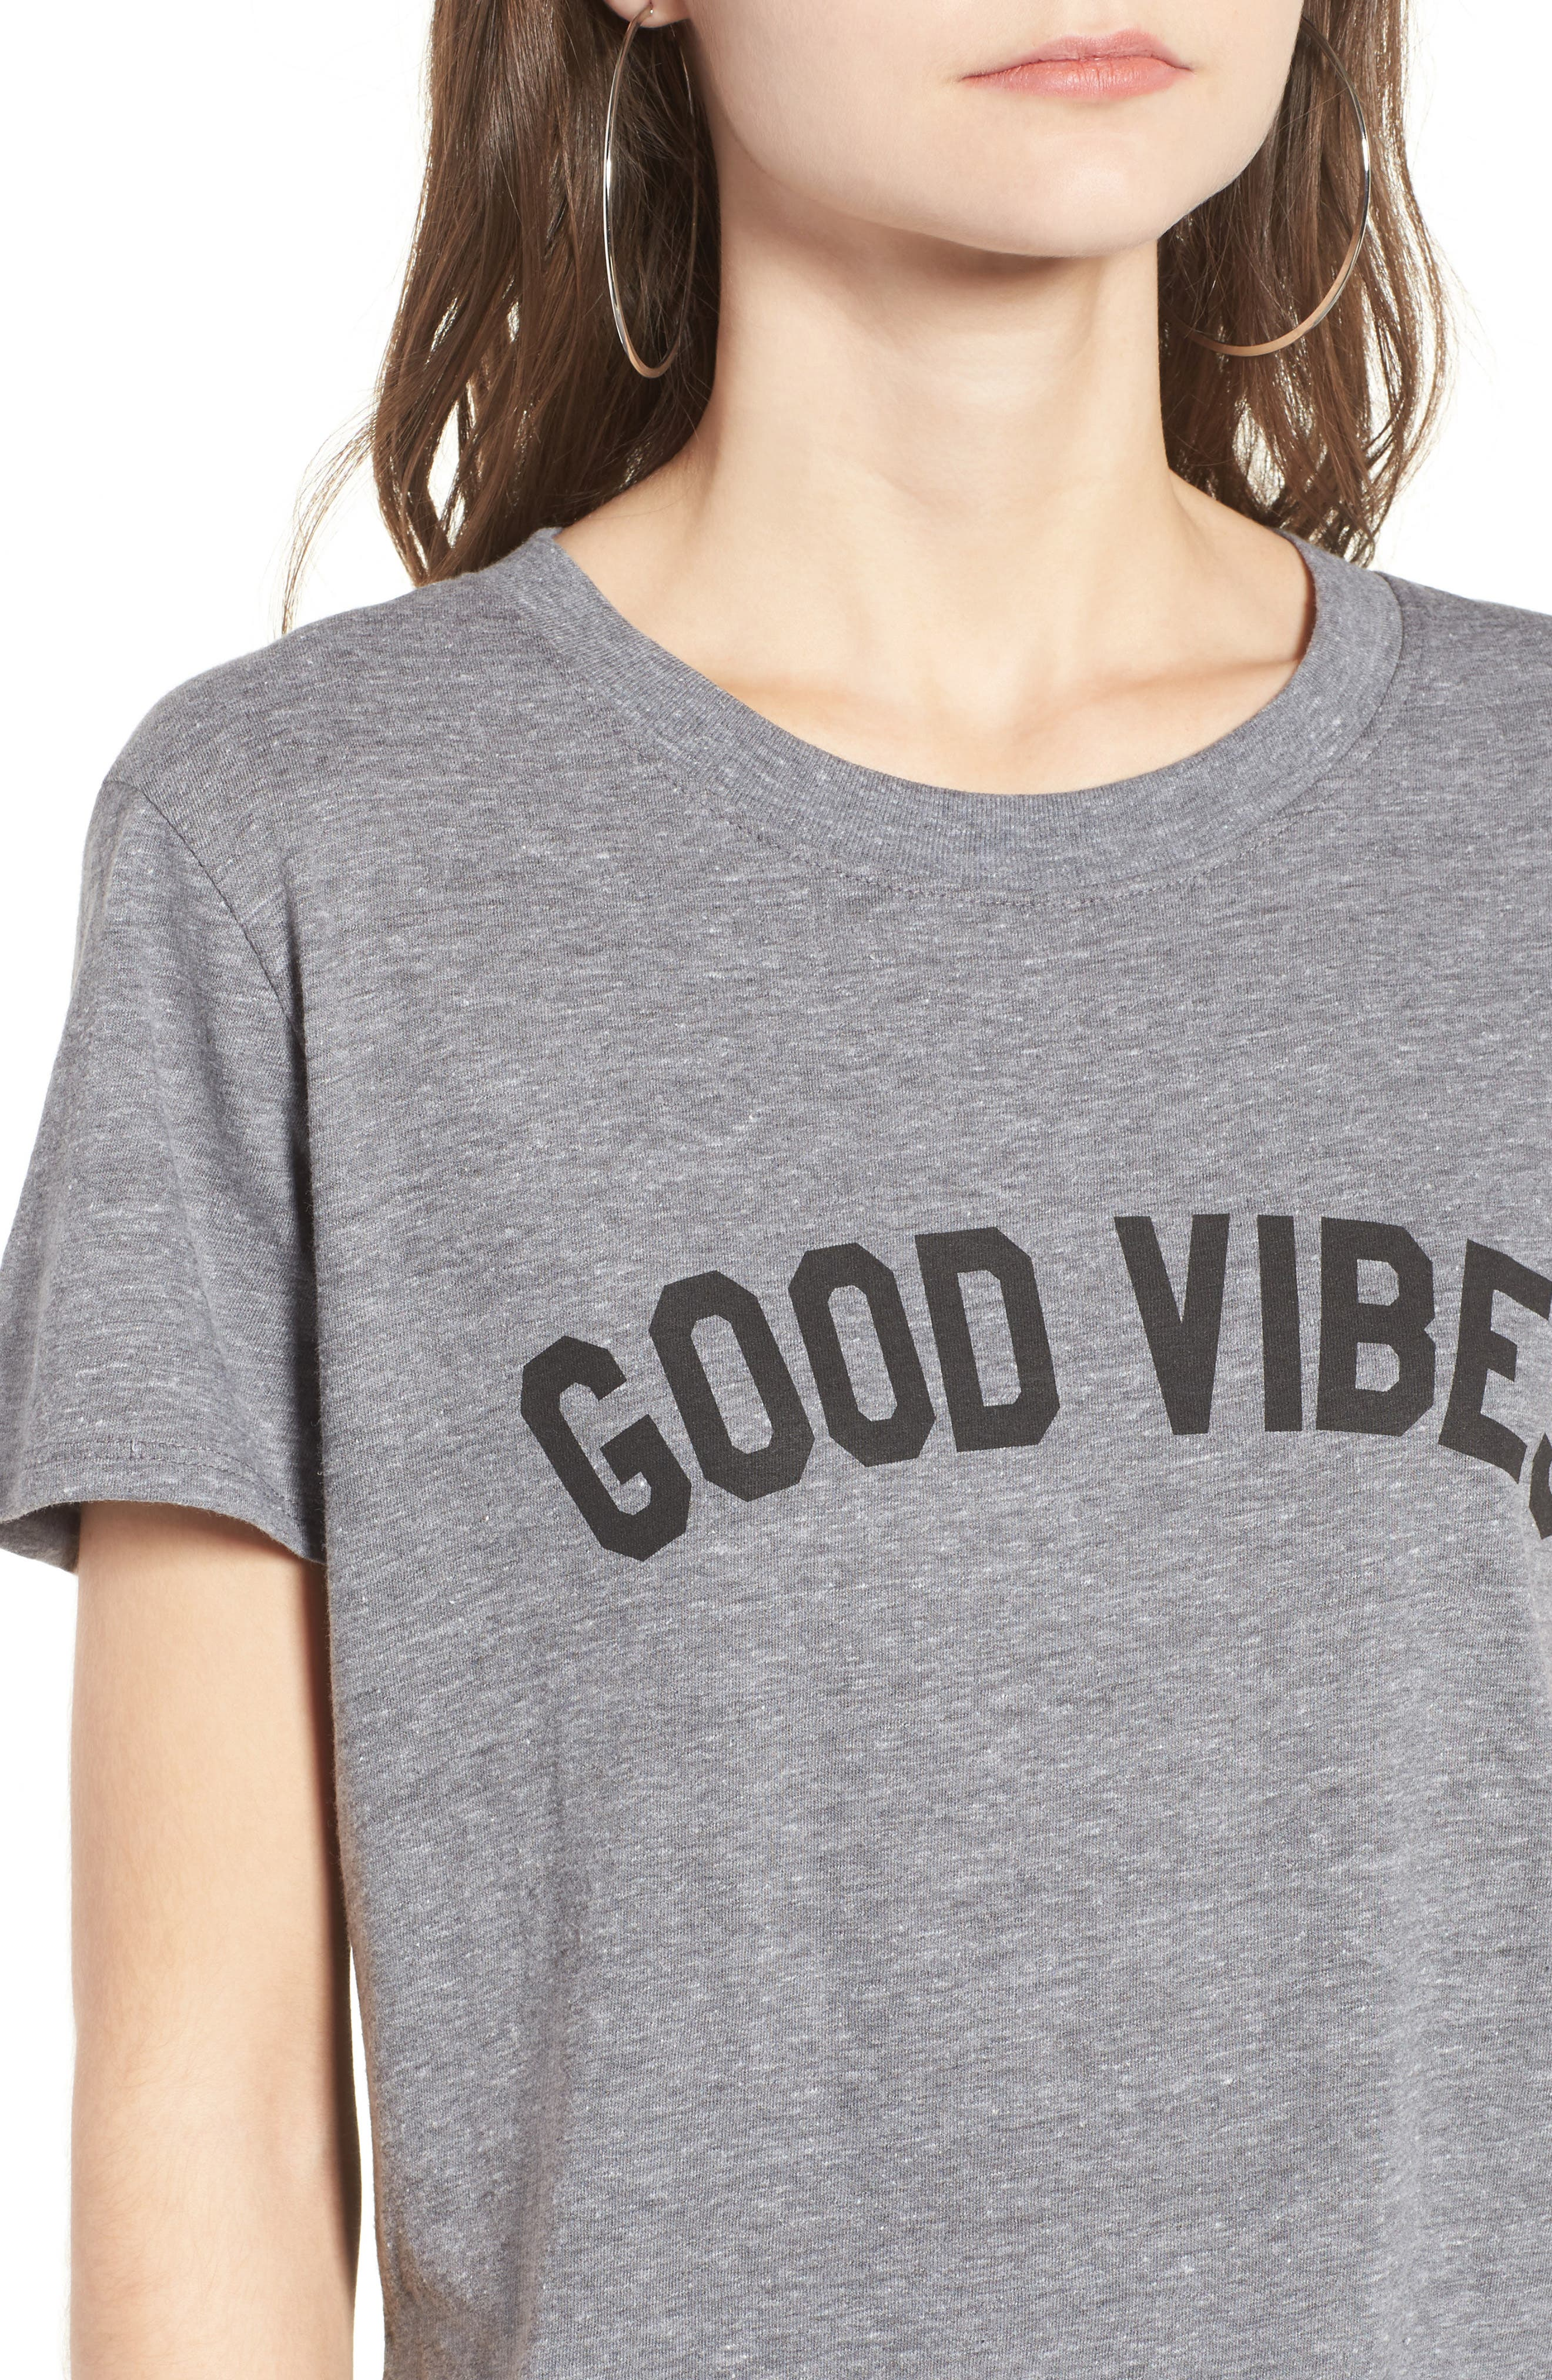 'Good Vibes' Graphic Tee,                             Alternate thumbnail 4, color,                             HEATHER GREY